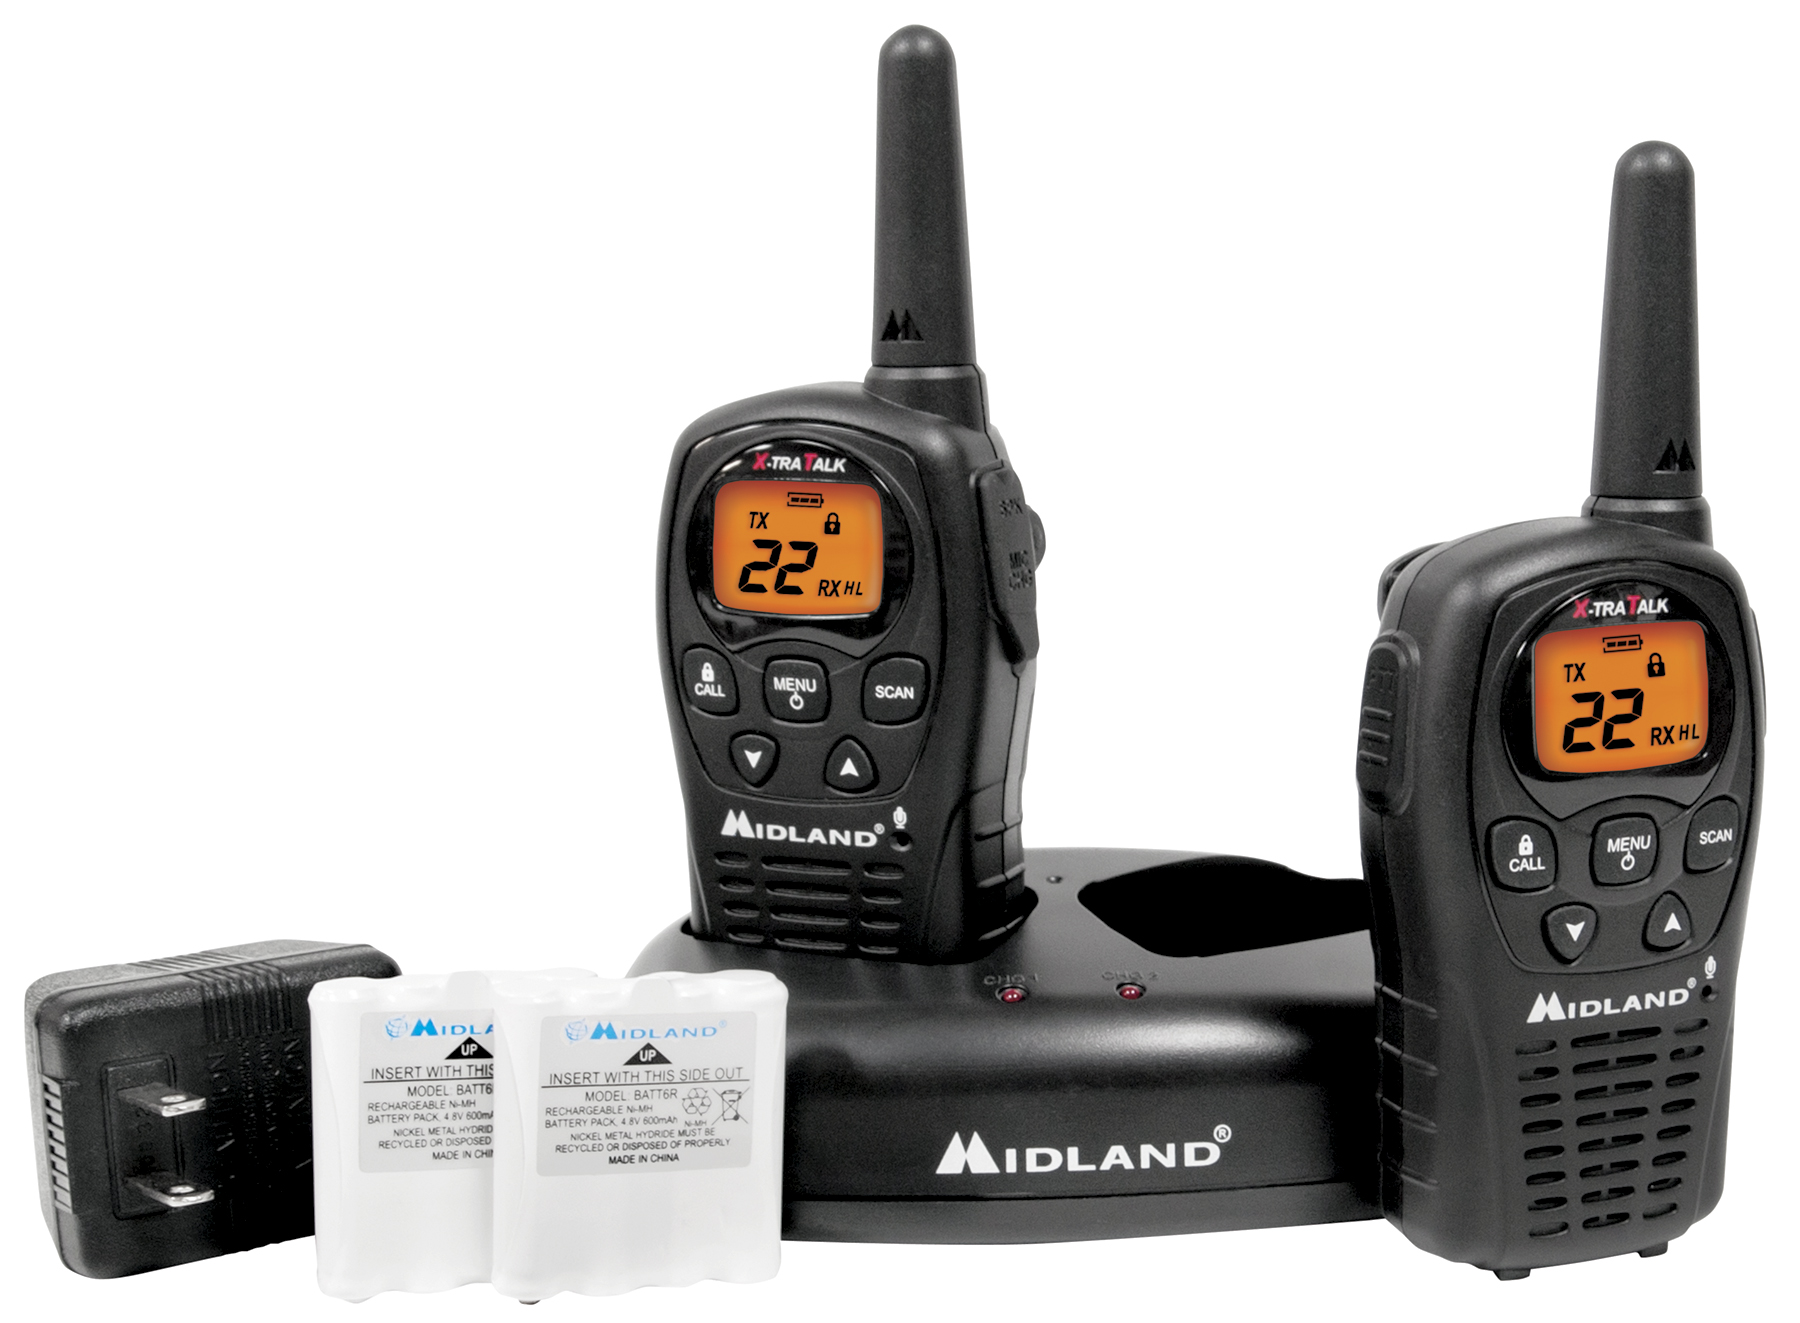 Midland's 2012 FRS/GMRS Two Way Radio Lineup